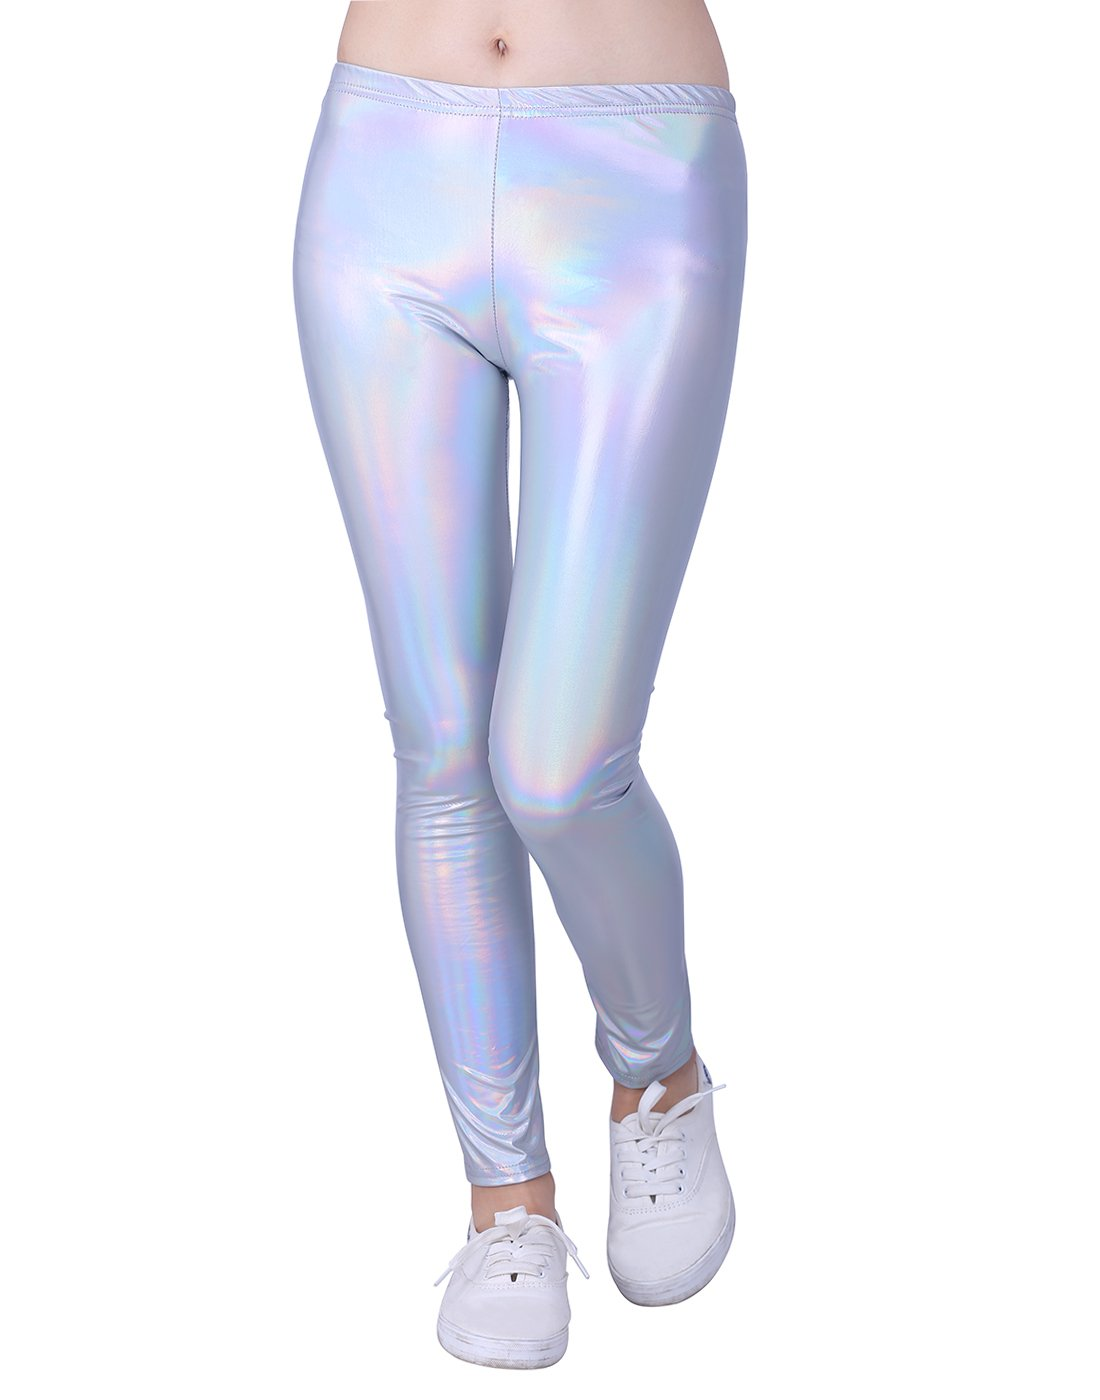 882e5ede50a3e Galleon - HDE Girls Shiny Wet Look Leggings Kids Liquid Metallic Footless  Tights (4T-12) (Iridescent 7/8)